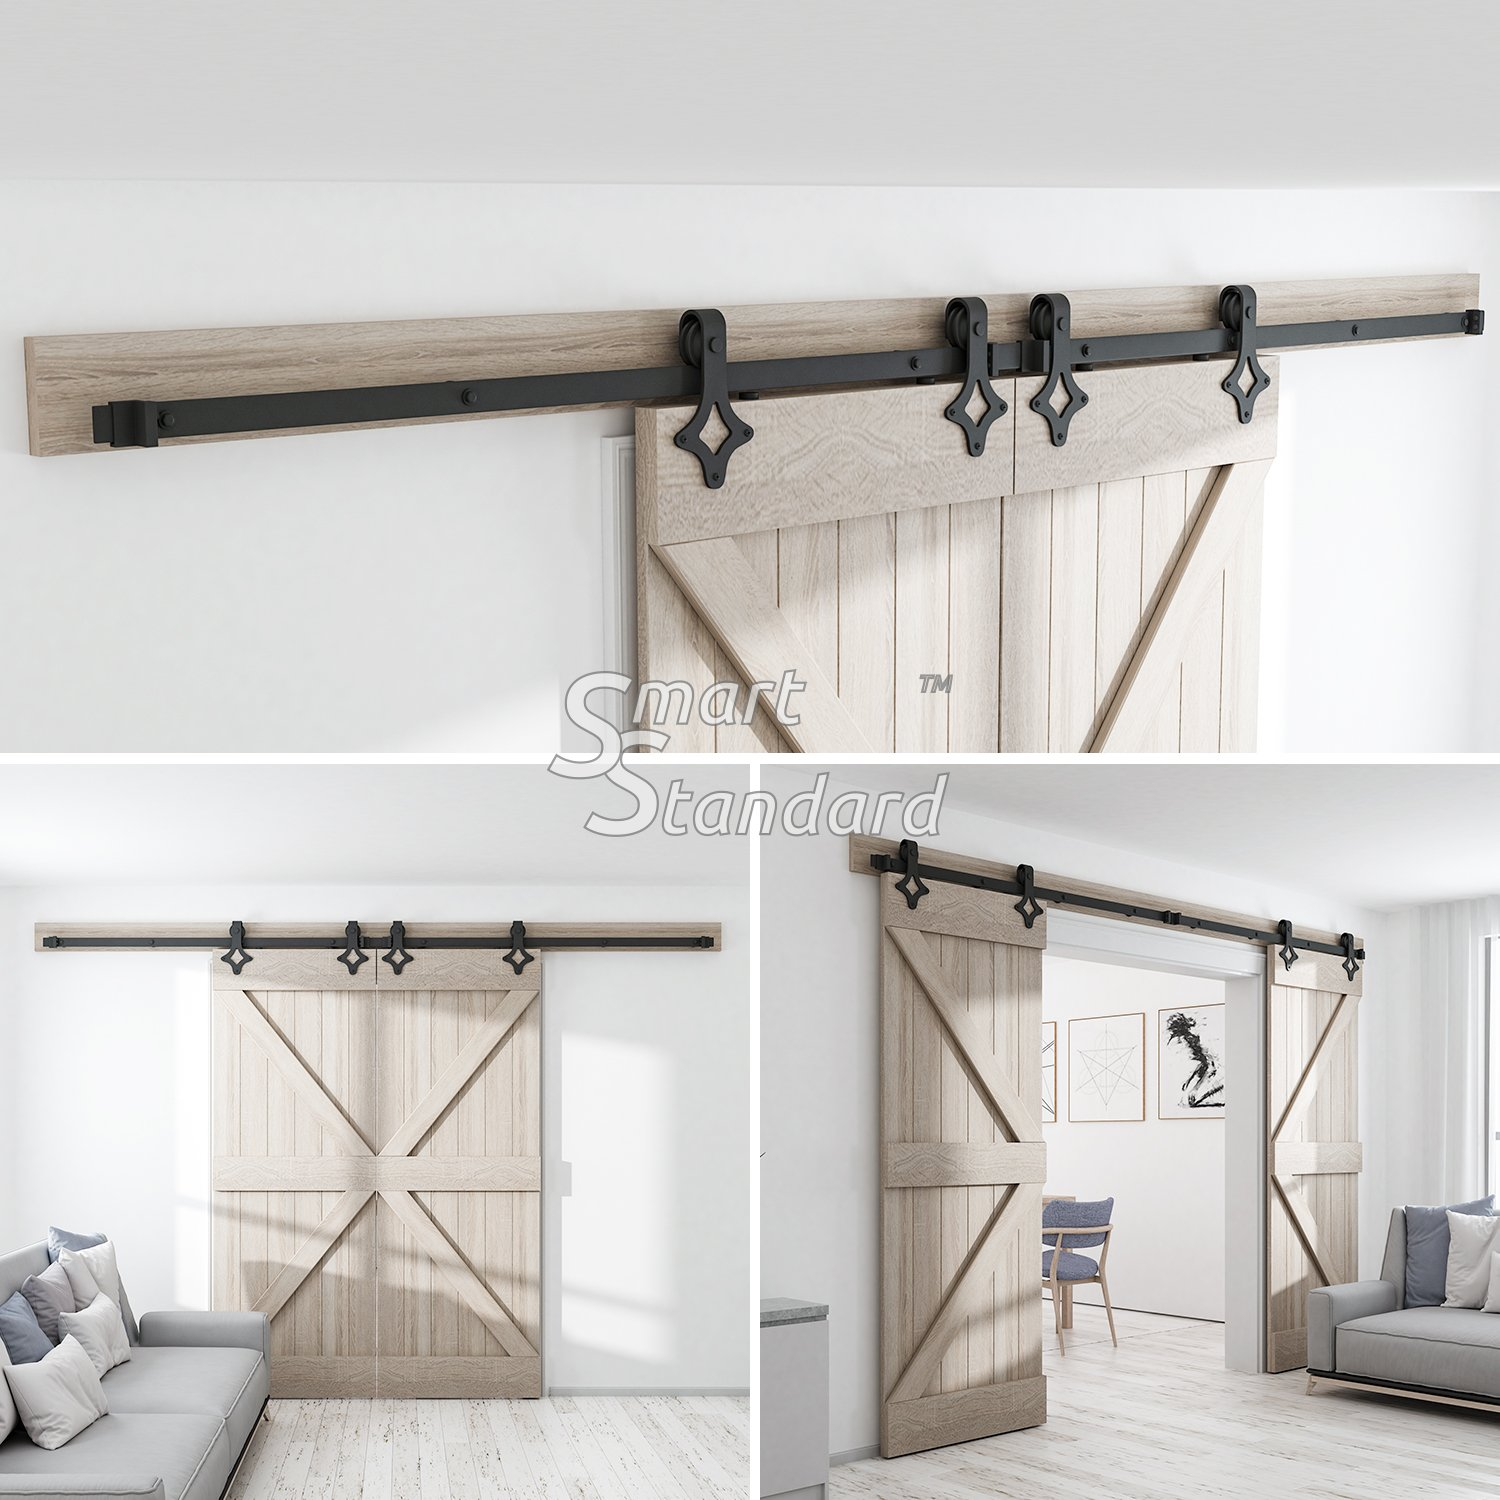 10ft Heavy Duty Sturdy Double Door Sliding Barn Door Hardware Kit - Super Smoothly and Quietly - Simple and Easy to Install - Includes Step-by-Step Instruction -Fit 30'' Wide Door(Rhombic Shape Hanger) by SMARTSTANDARD (Image #3)